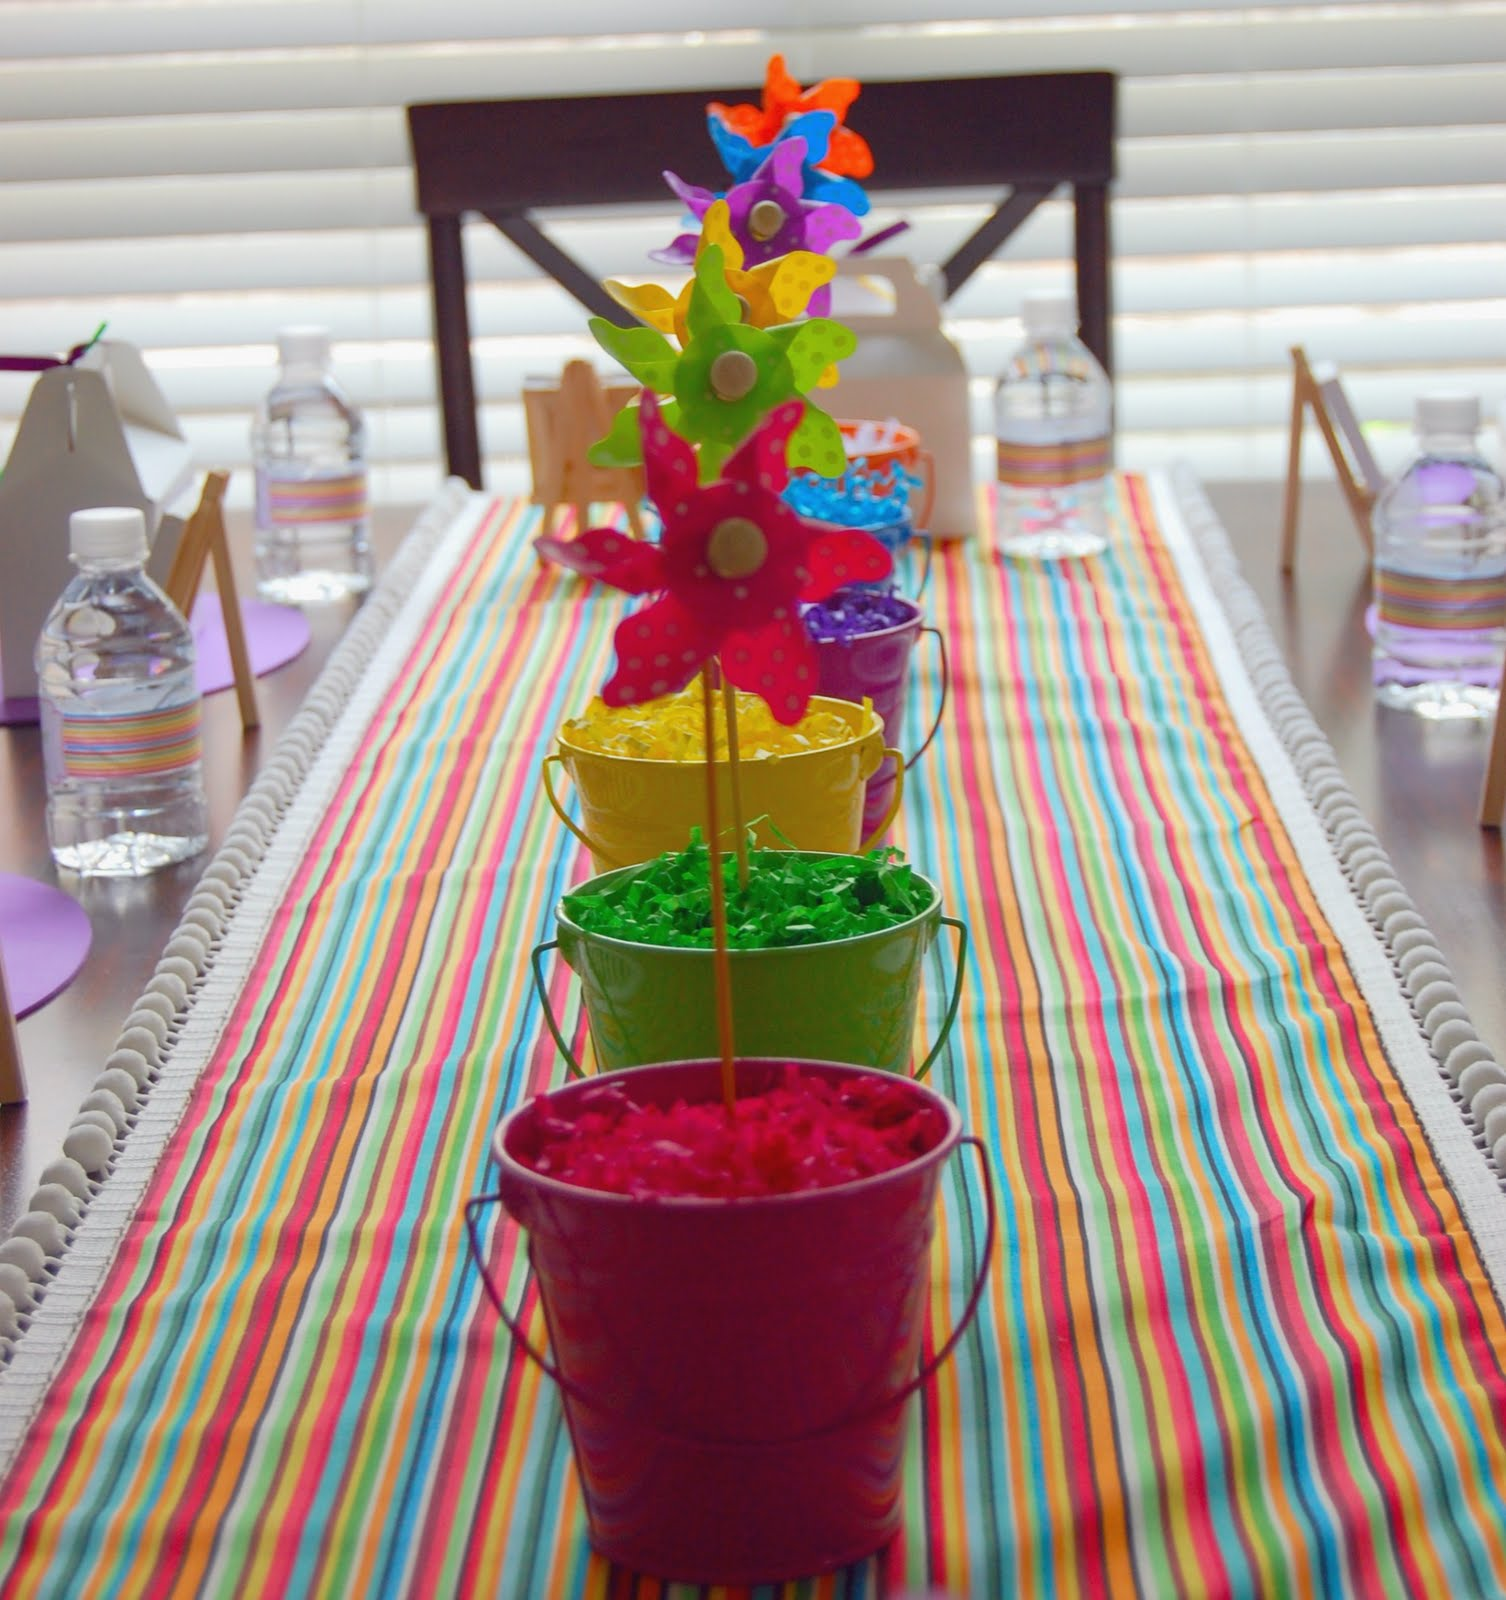 Party Decorations Table Centerpieces: Simply Creative Insanity: Picasso Art Party